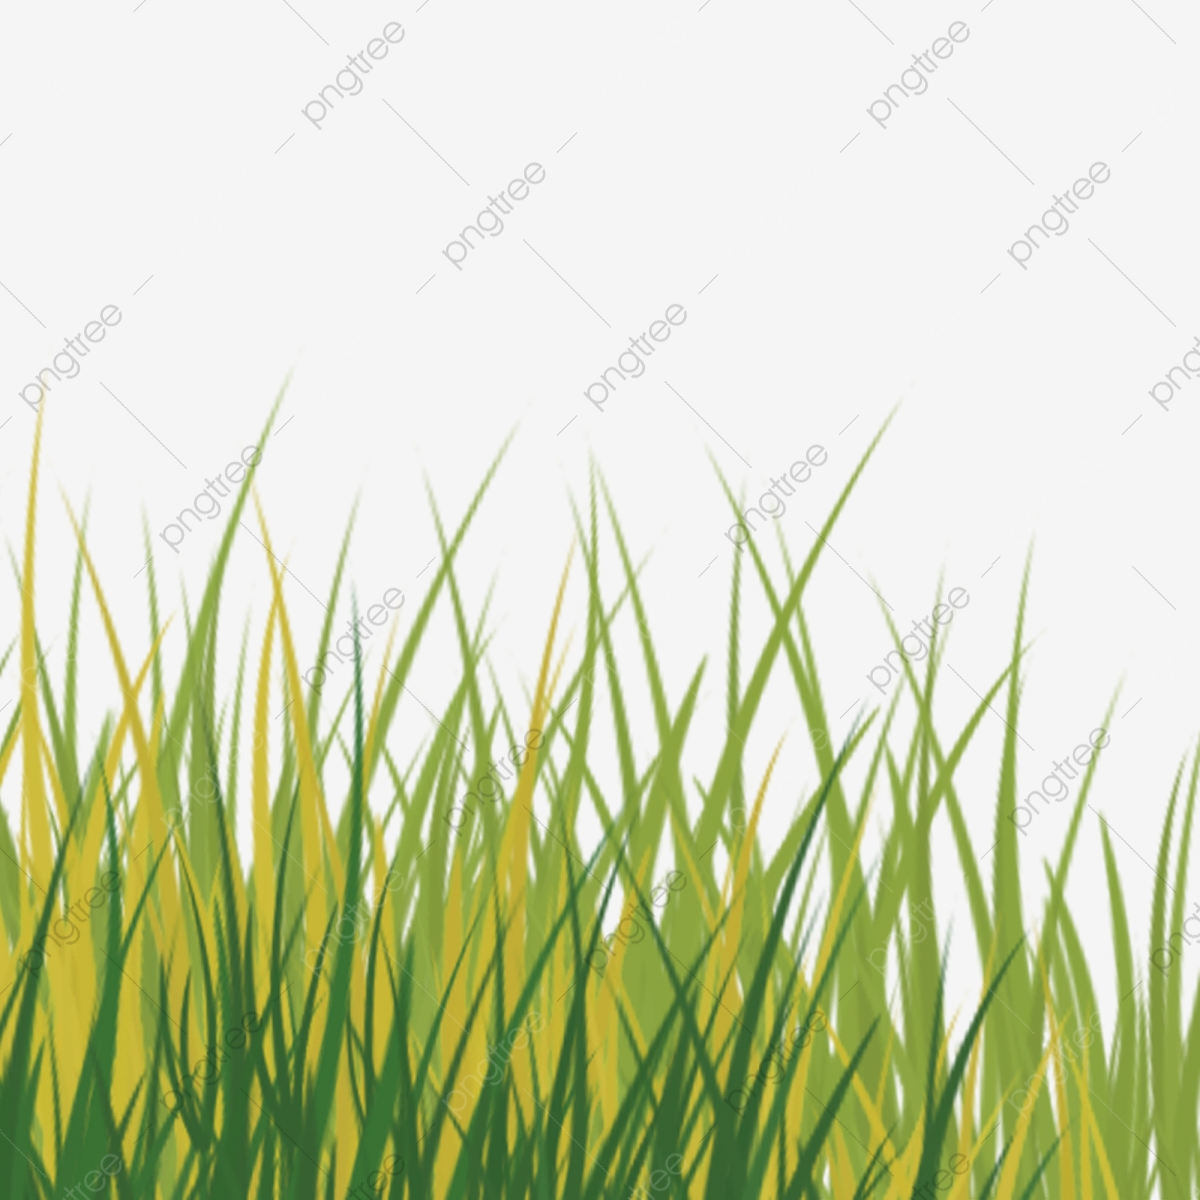 Cartoon Green Grass Png Download Grass Green Grass Spring Grass Png Transparent Clipart Image And Psd File For Free Download